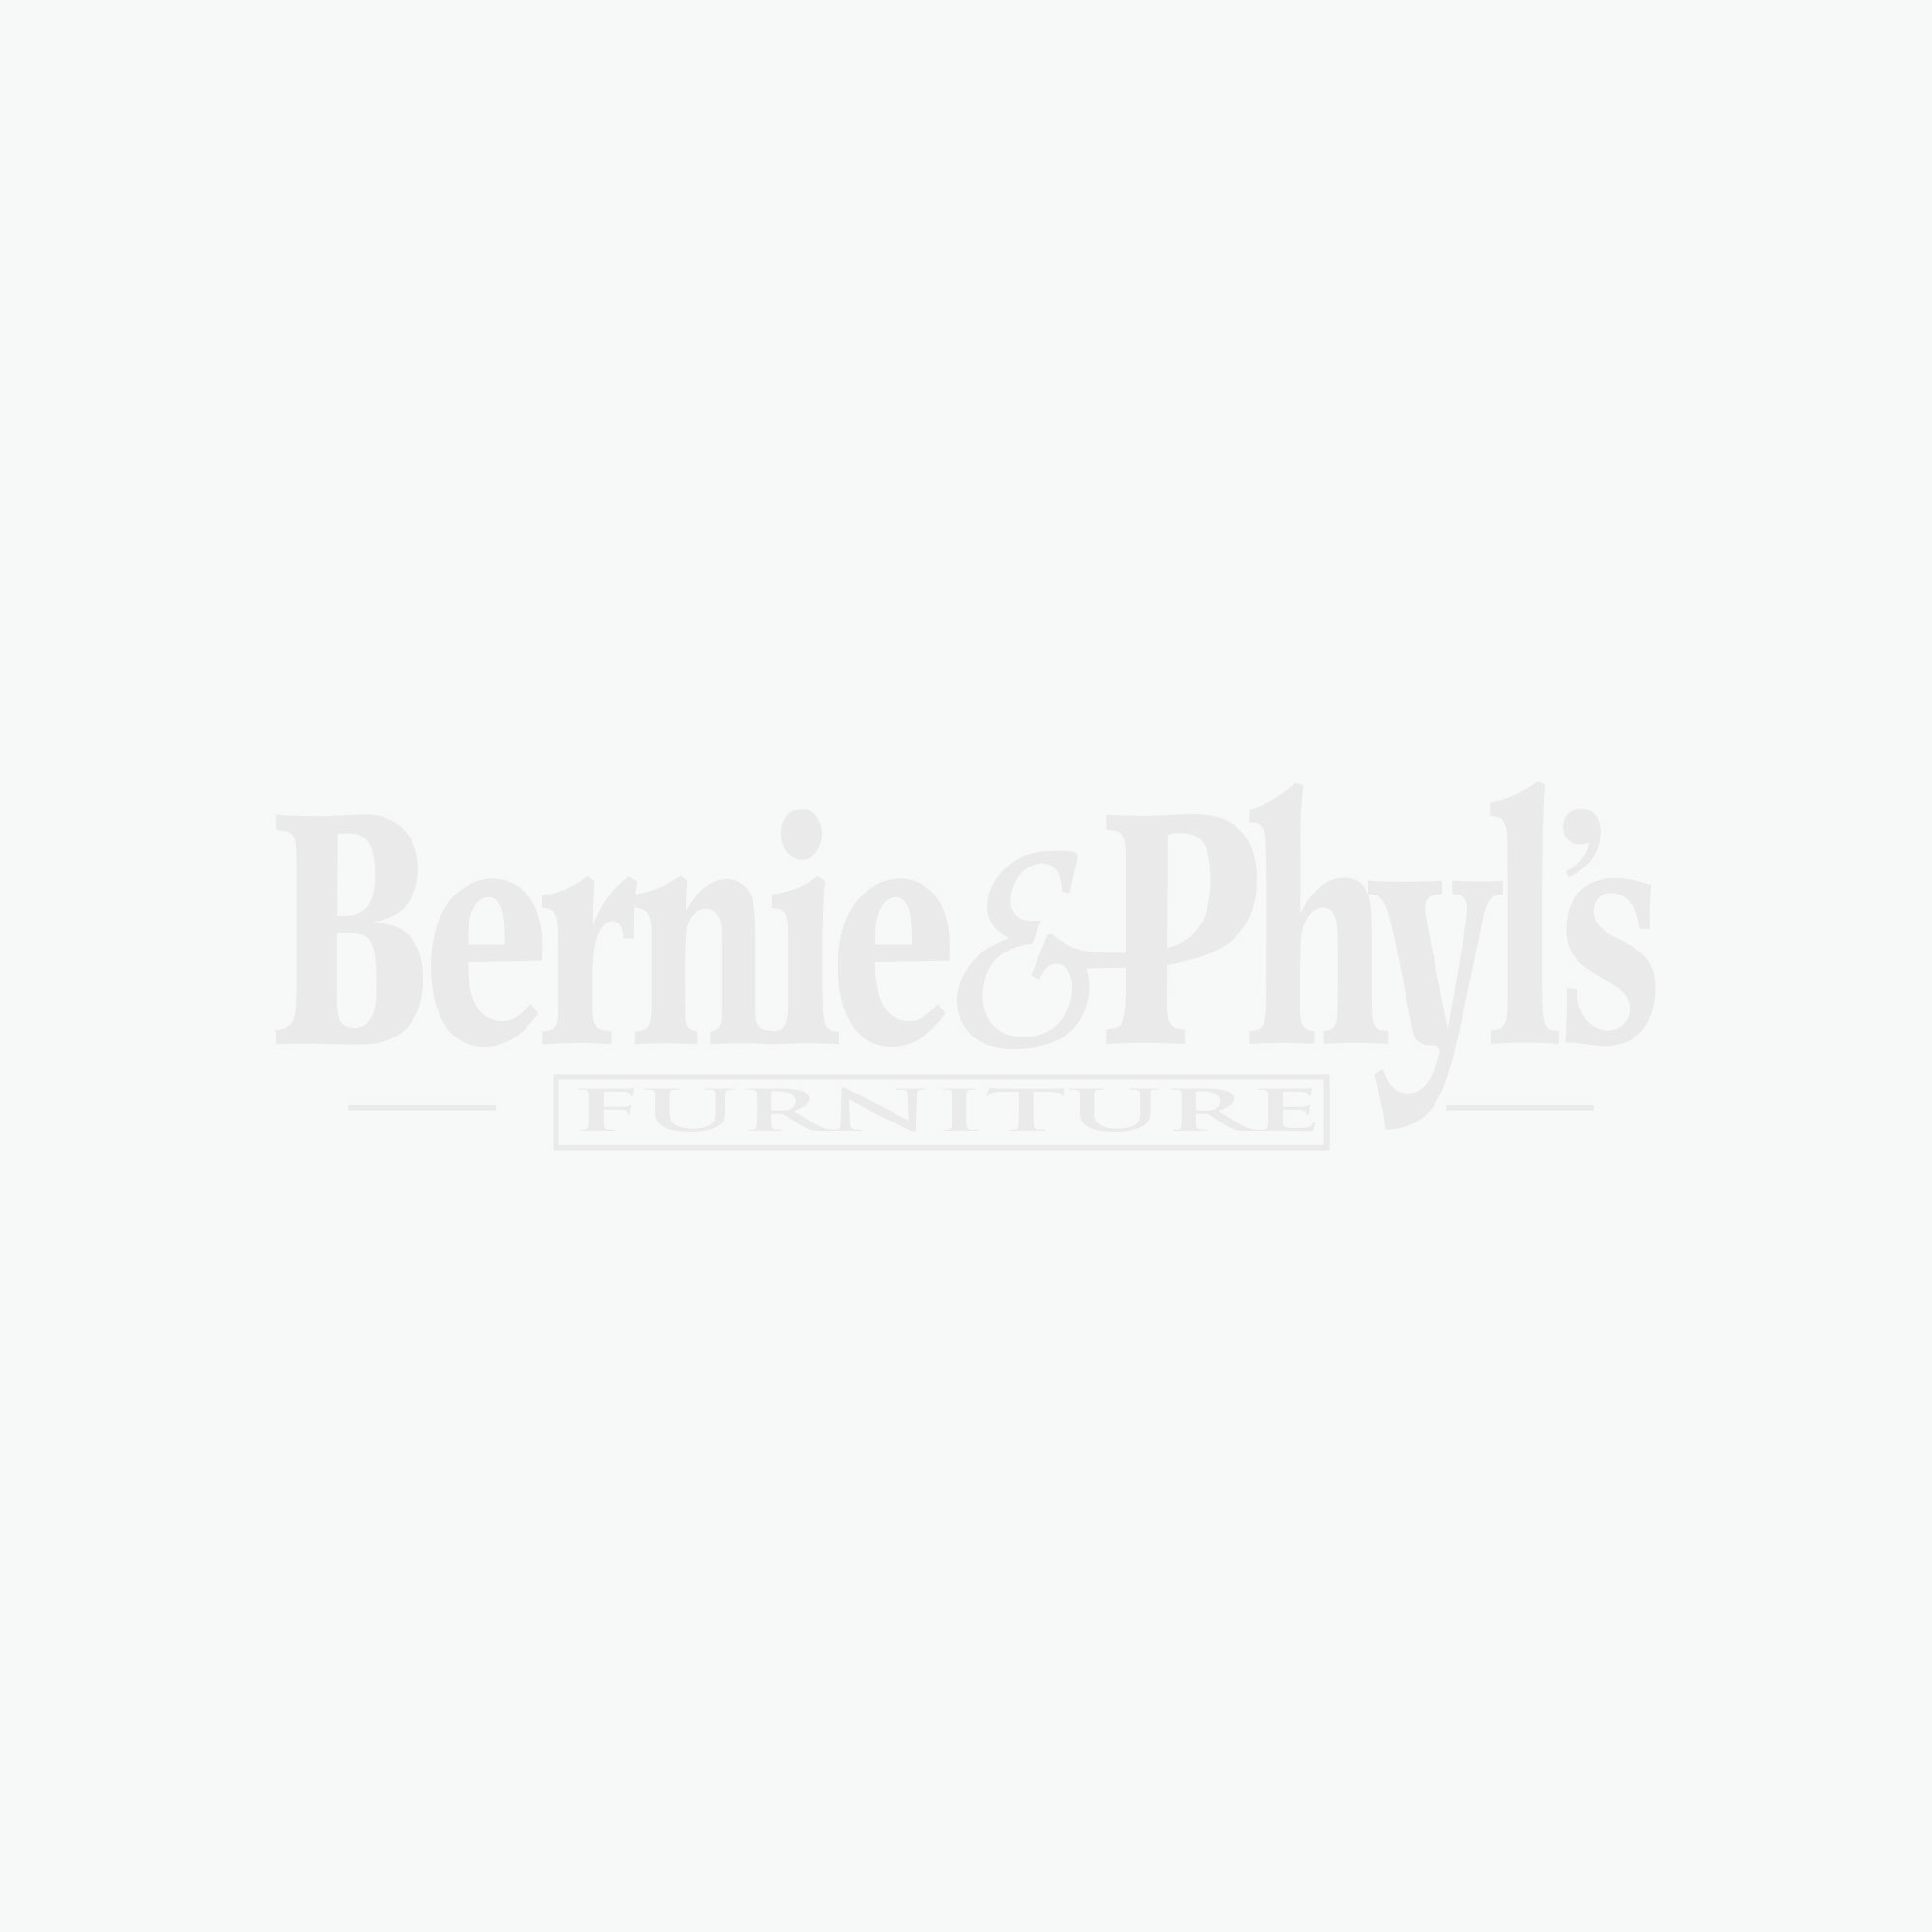 Hamlyn Office Chair Bernie Phyl S Furniture By Ashley Furniture